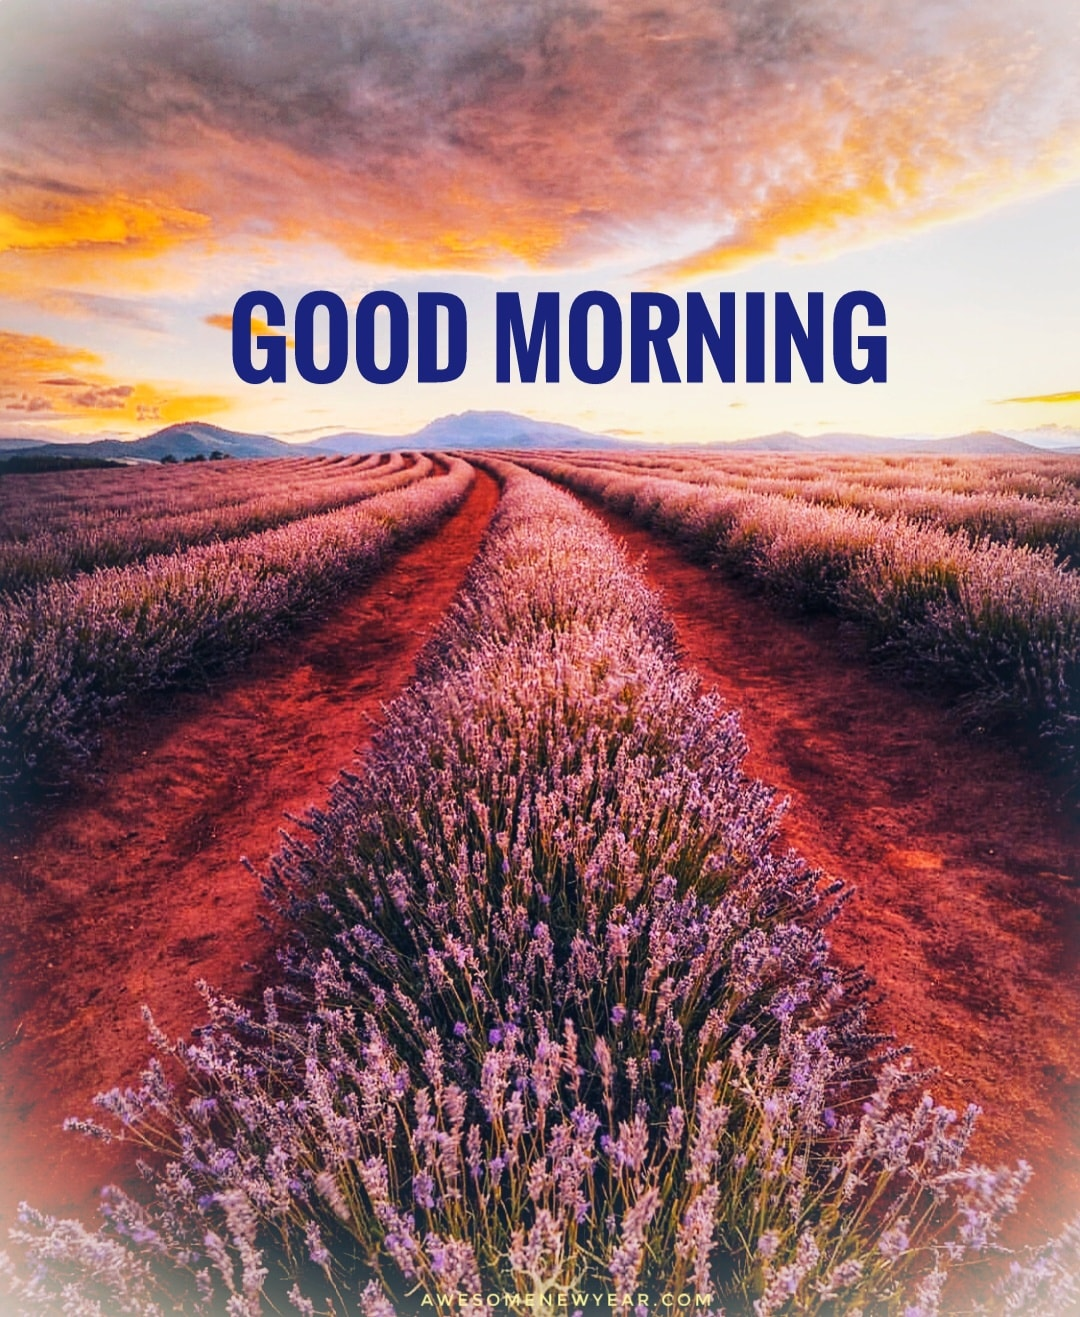 Good Morning Images Photos Wallpapers Pictures Free Download